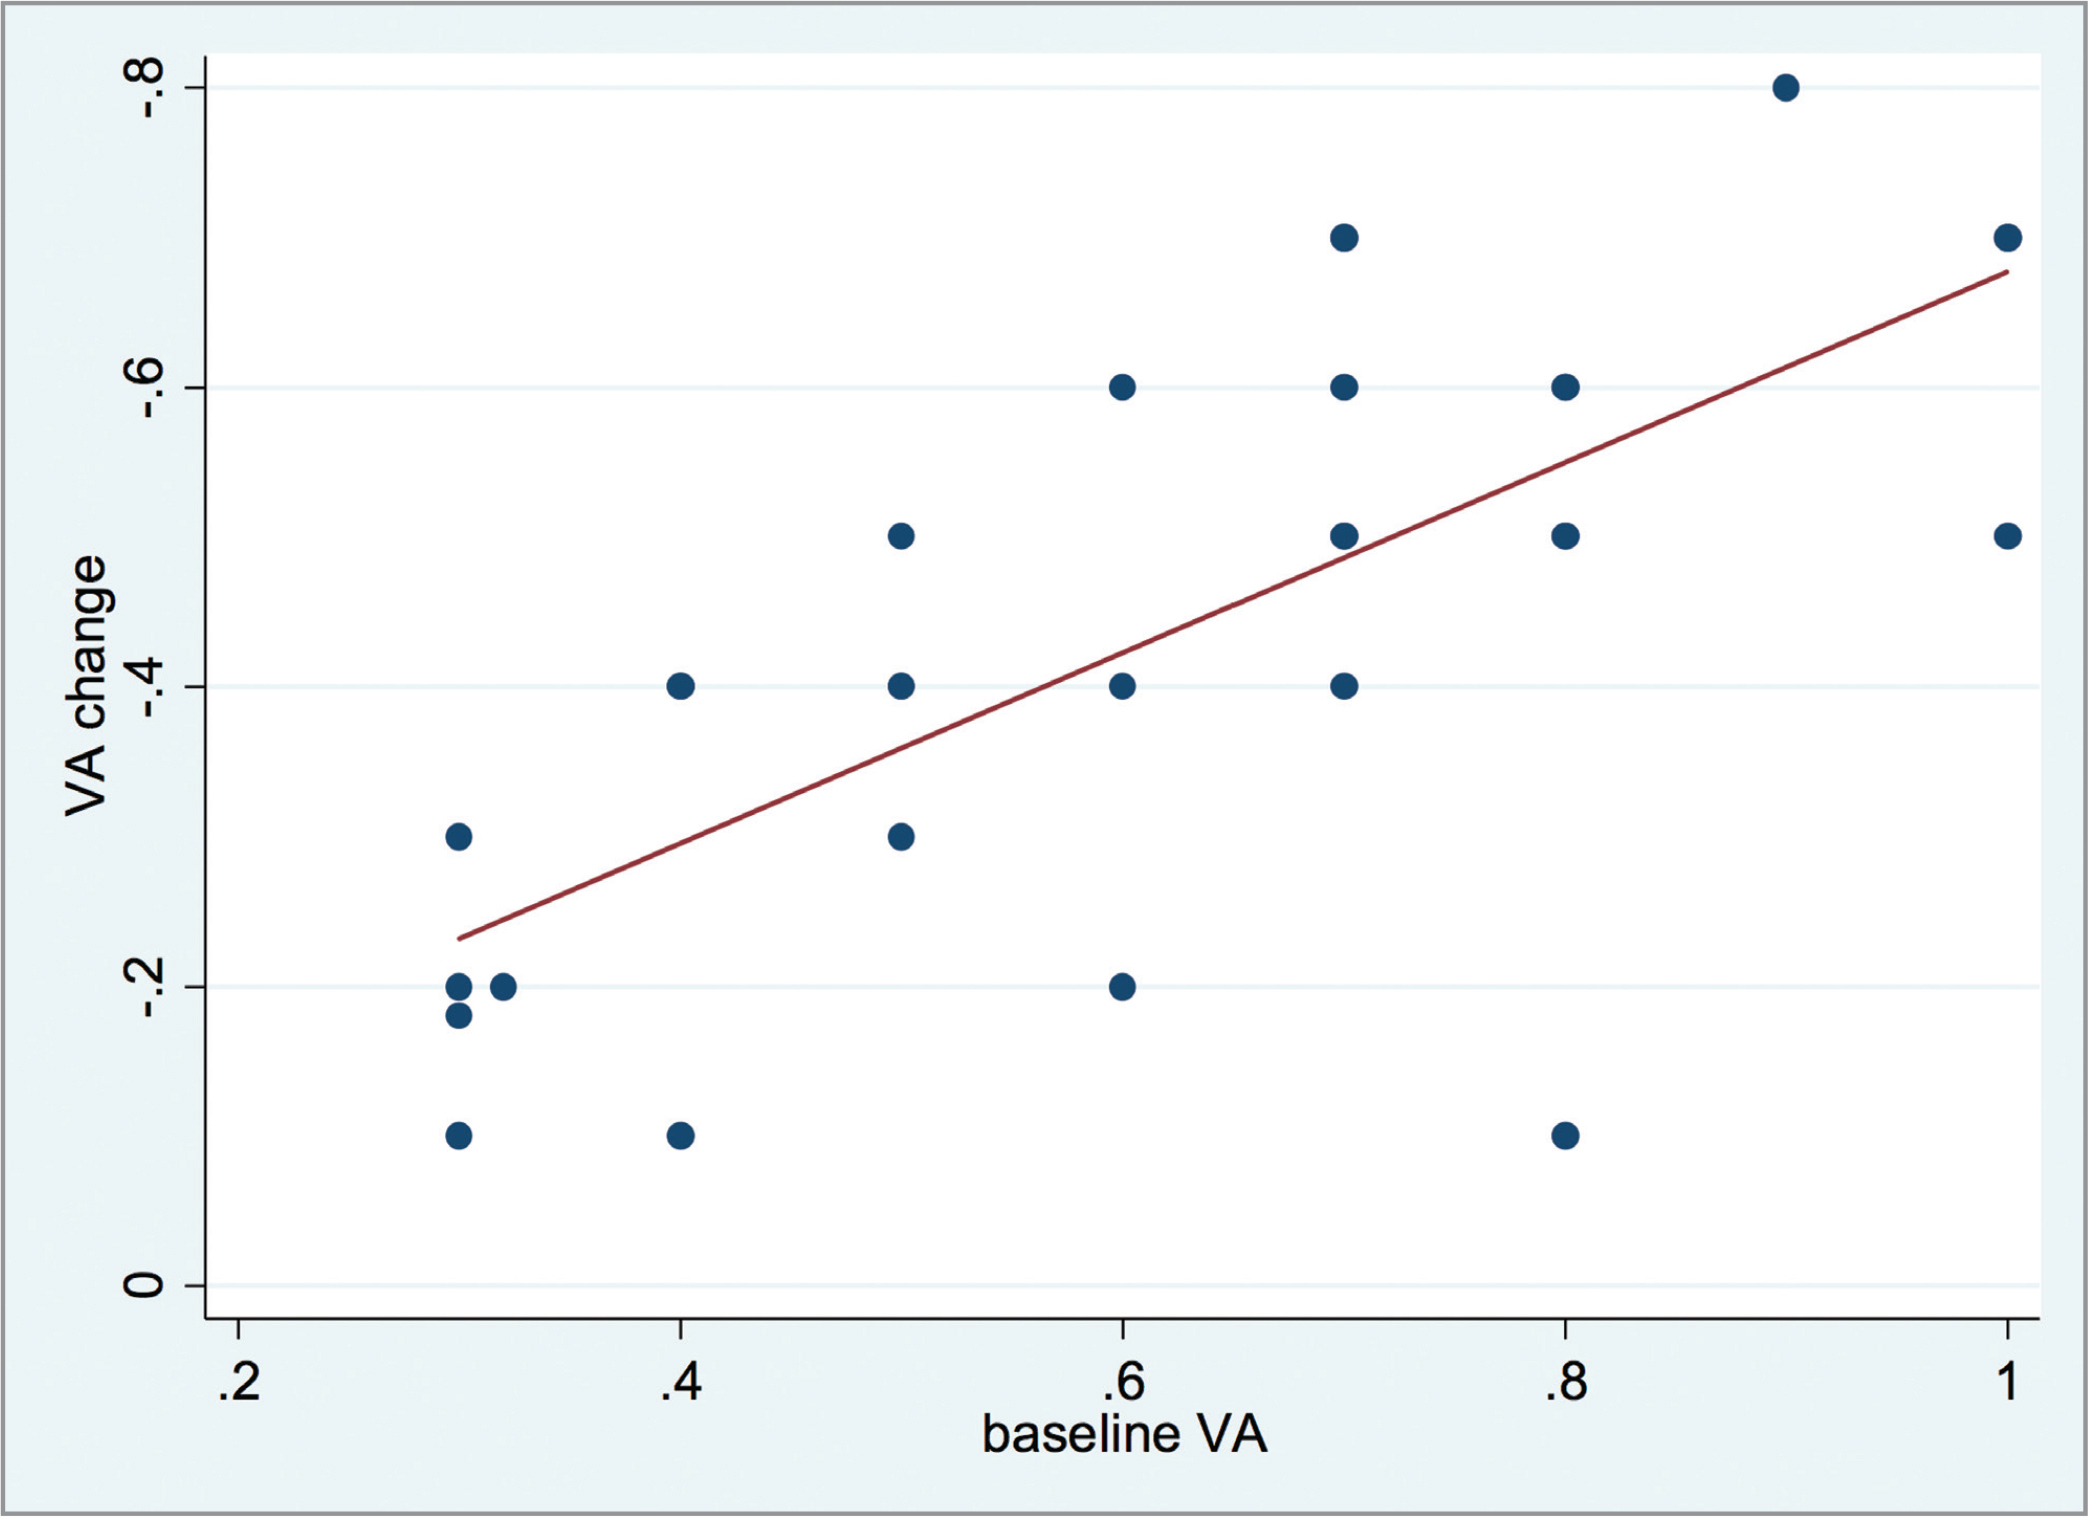 Change in best-corrected visual acuity (VA) (logMAR) preoperatively versus postoperatively.